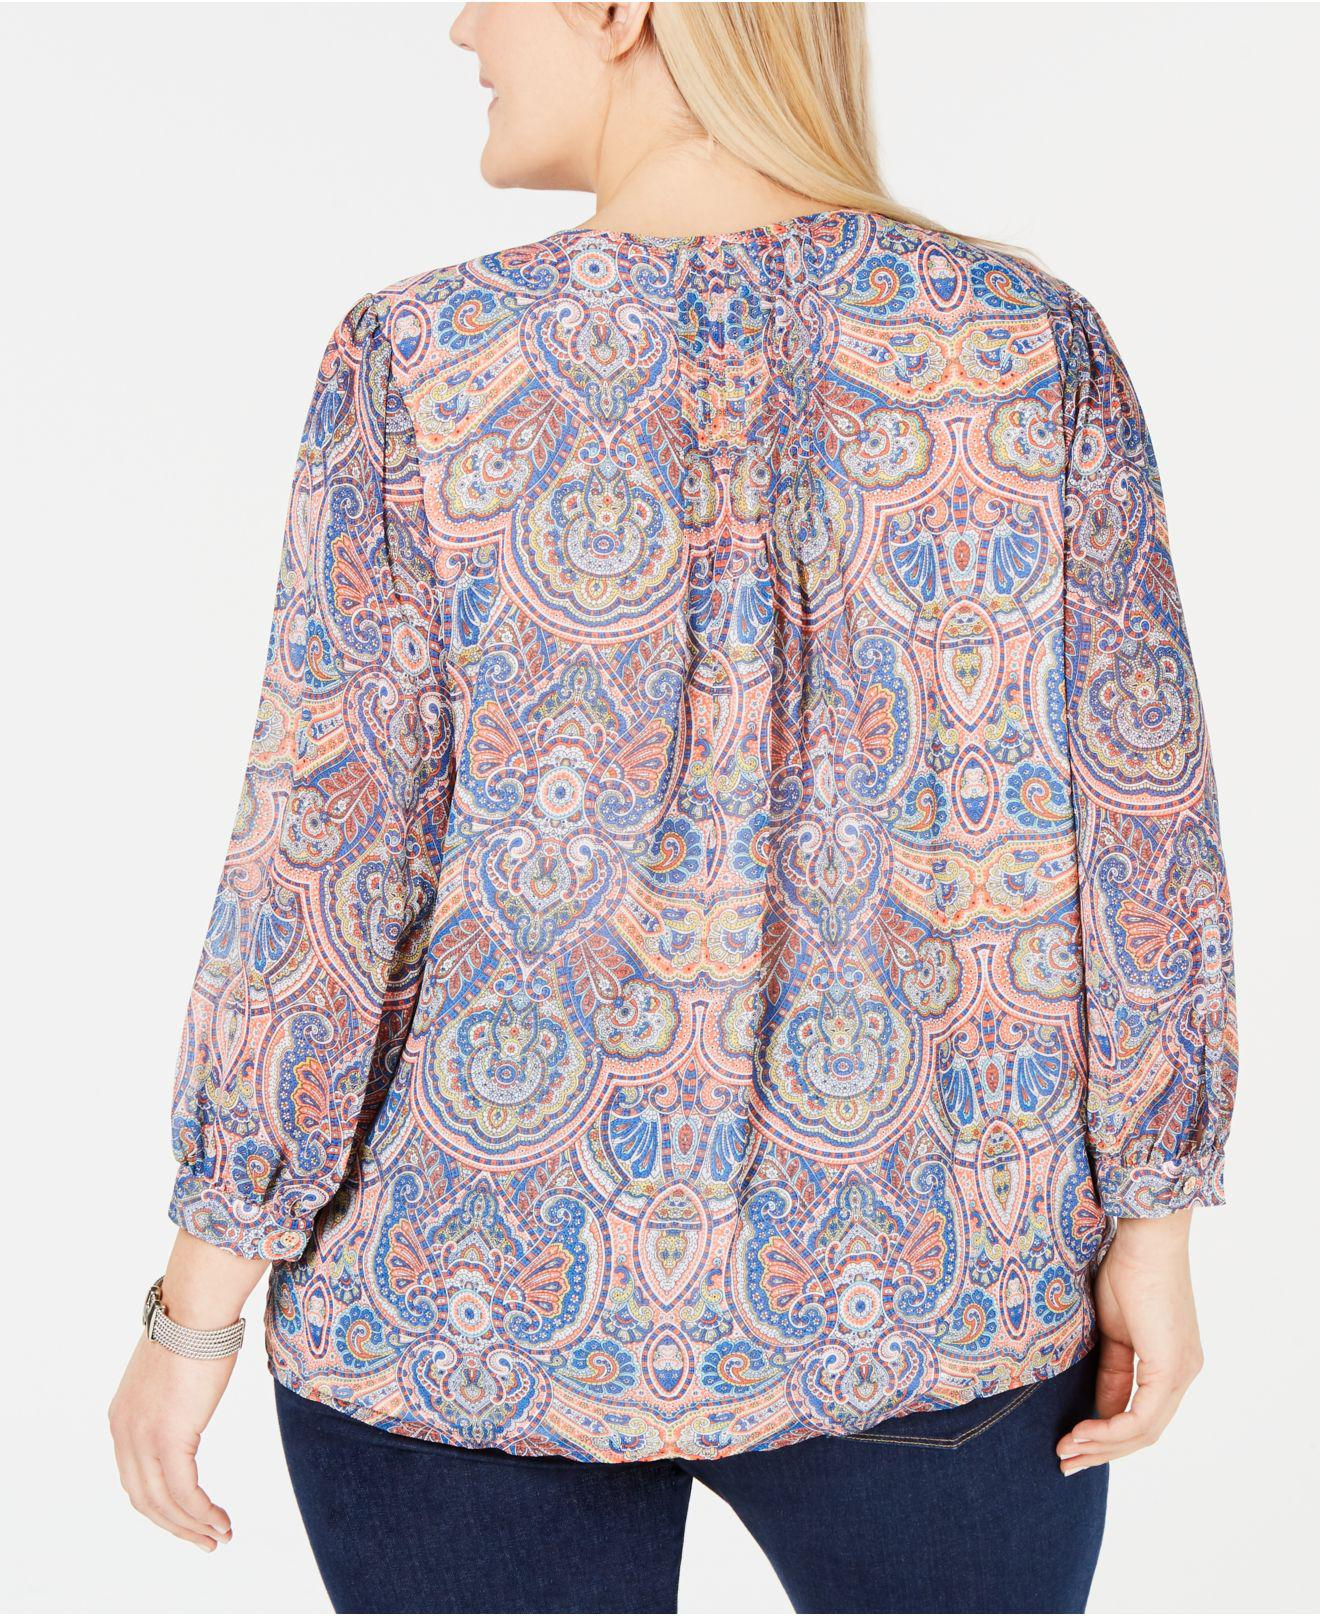 2cc402b4c29255 Lyst - Tommy Hilfiger Plus Size Paisley-print Pintucked Top